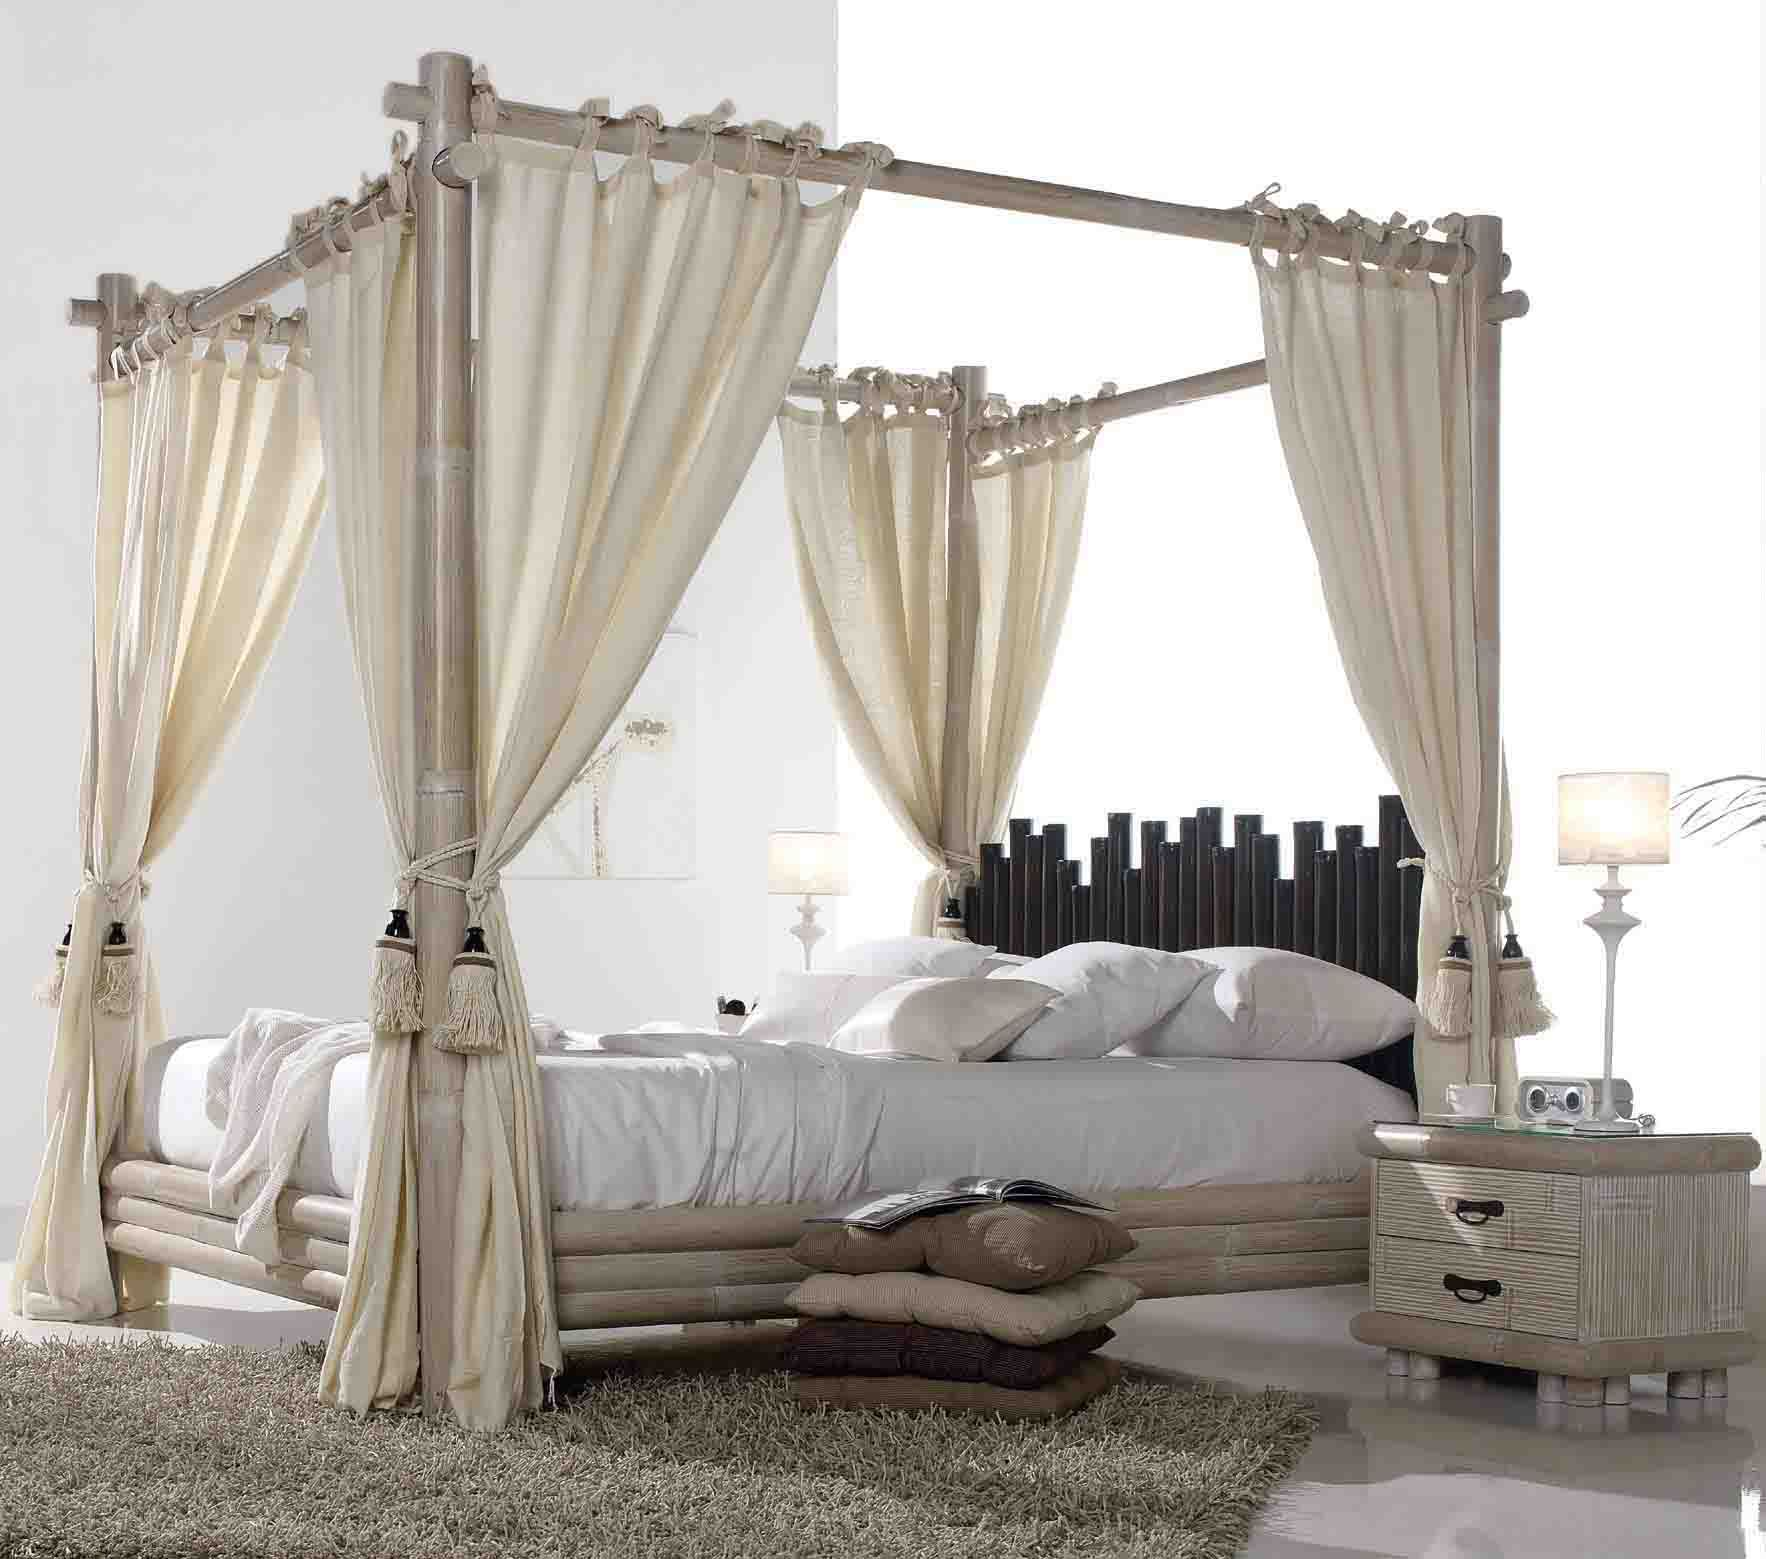 bambus himmelbett cabana ihr online shop f r elegante holzbetten im afrika stil schlafzimmer. Black Bedroom Furniture Sets. Home Design Ideas